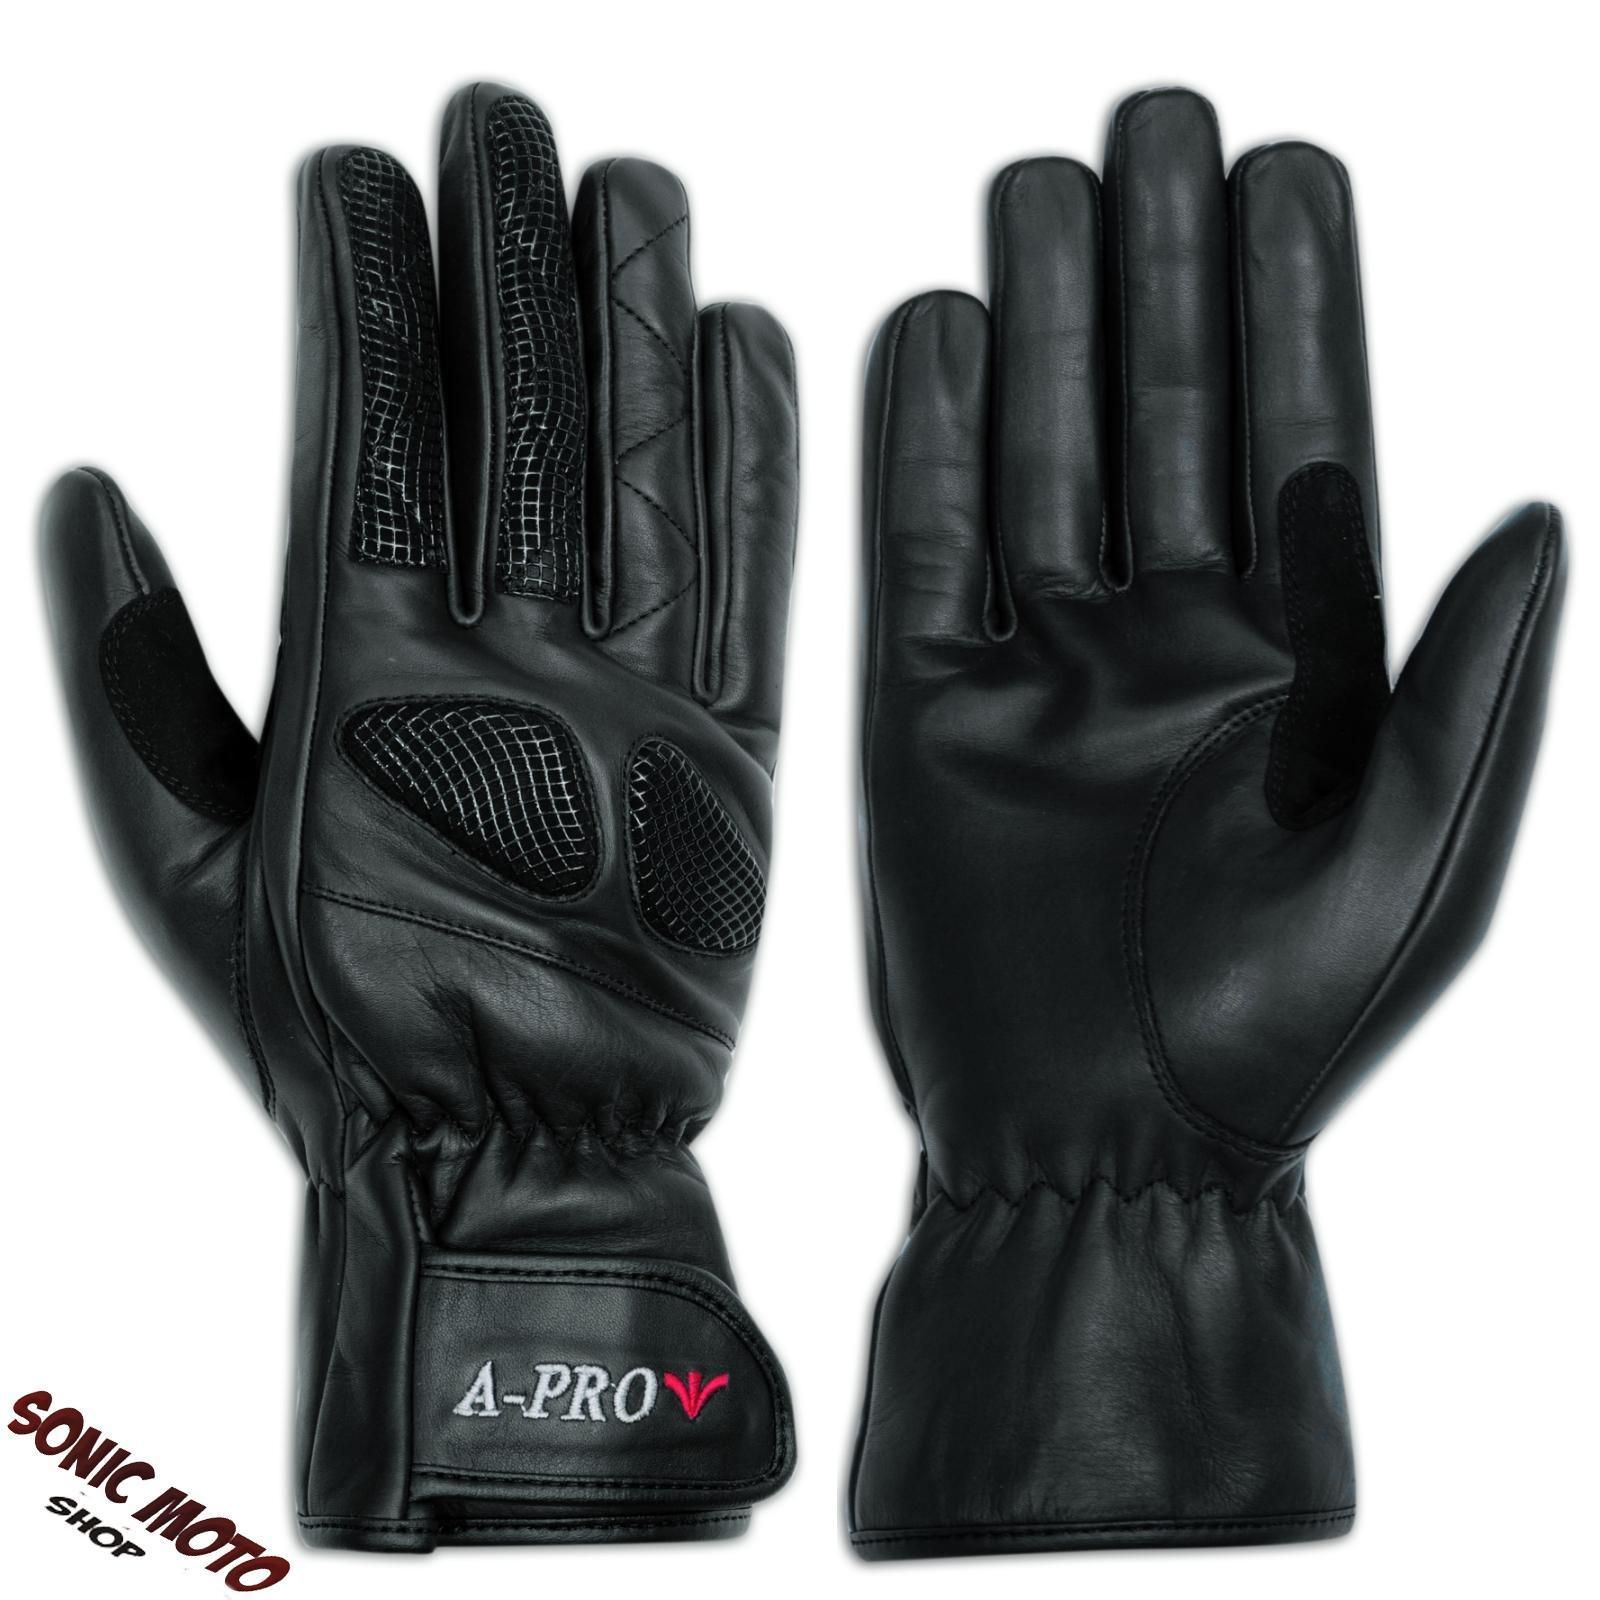 Motorcycle gloves cruiser - Leather Gloves Motorcycle Apparel All Season Scooter Cruiser Cowhide Black